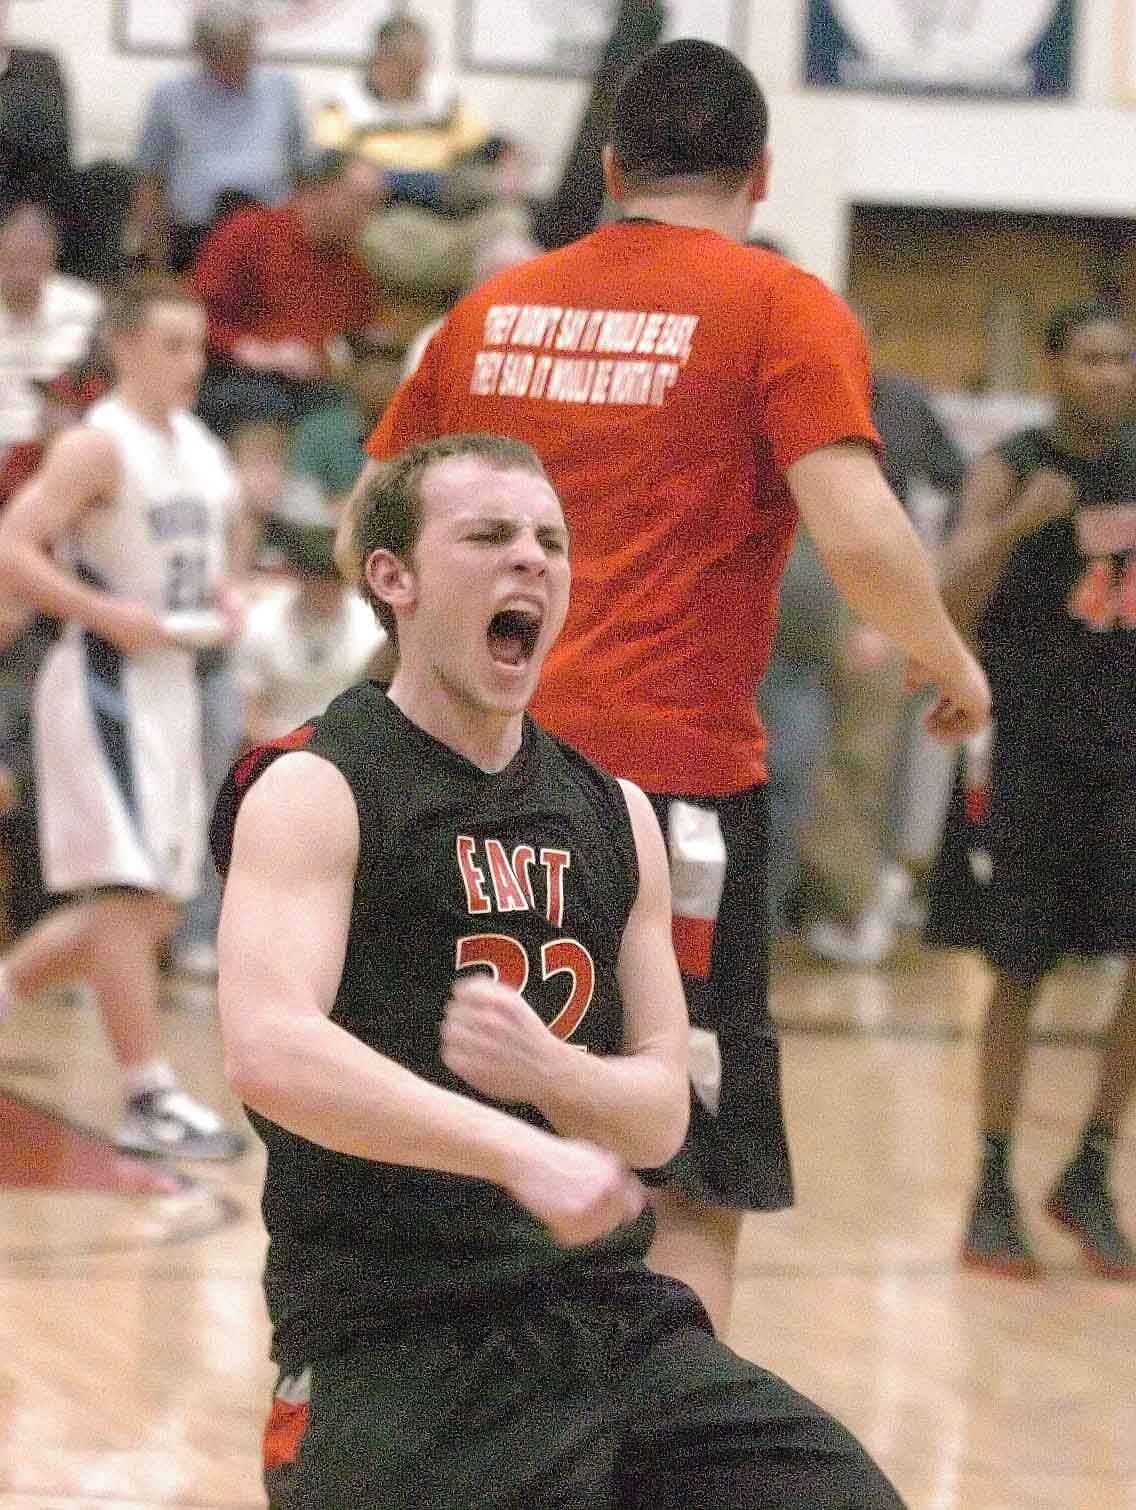 Zach Miller of Glenbard East lets out a scream after their big win. This took place during the Glenbard East vs. Downers Grove South at East Aurora game Wednesday.